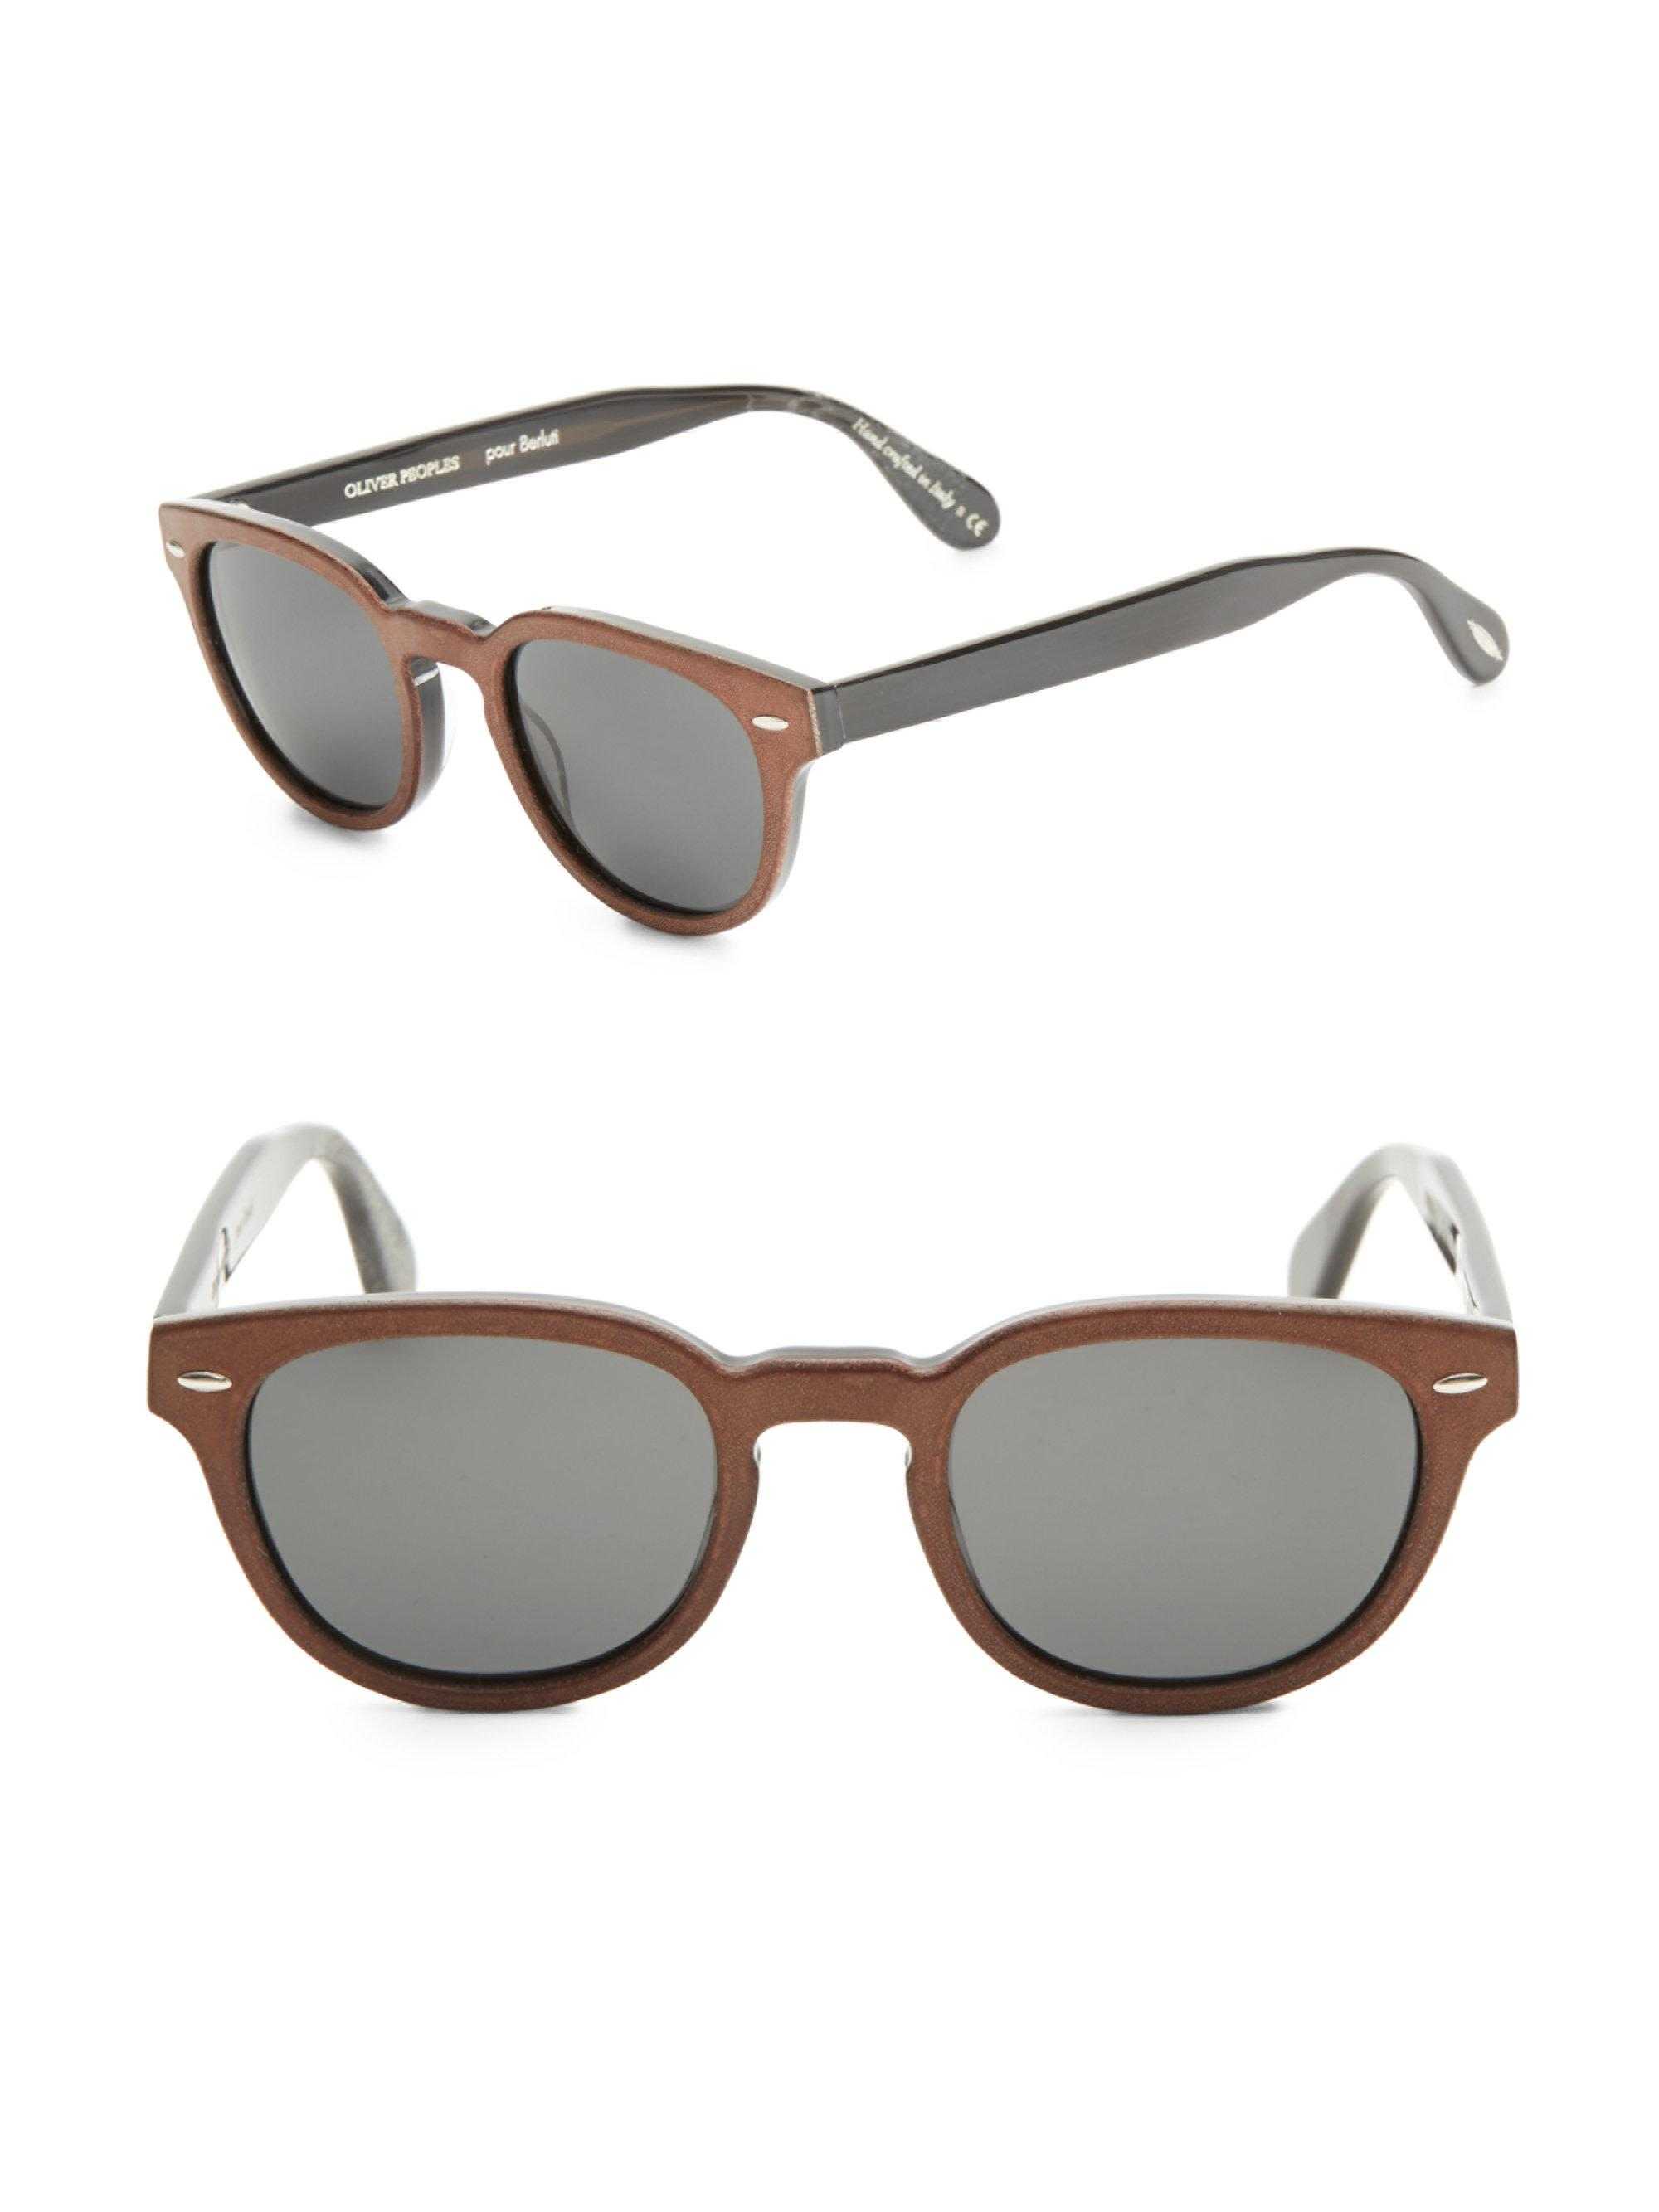 88e1d164866 Oliver Peoples Sheldrake 49mm Cat Eye Sunglasses in Brown for Men - Lyst